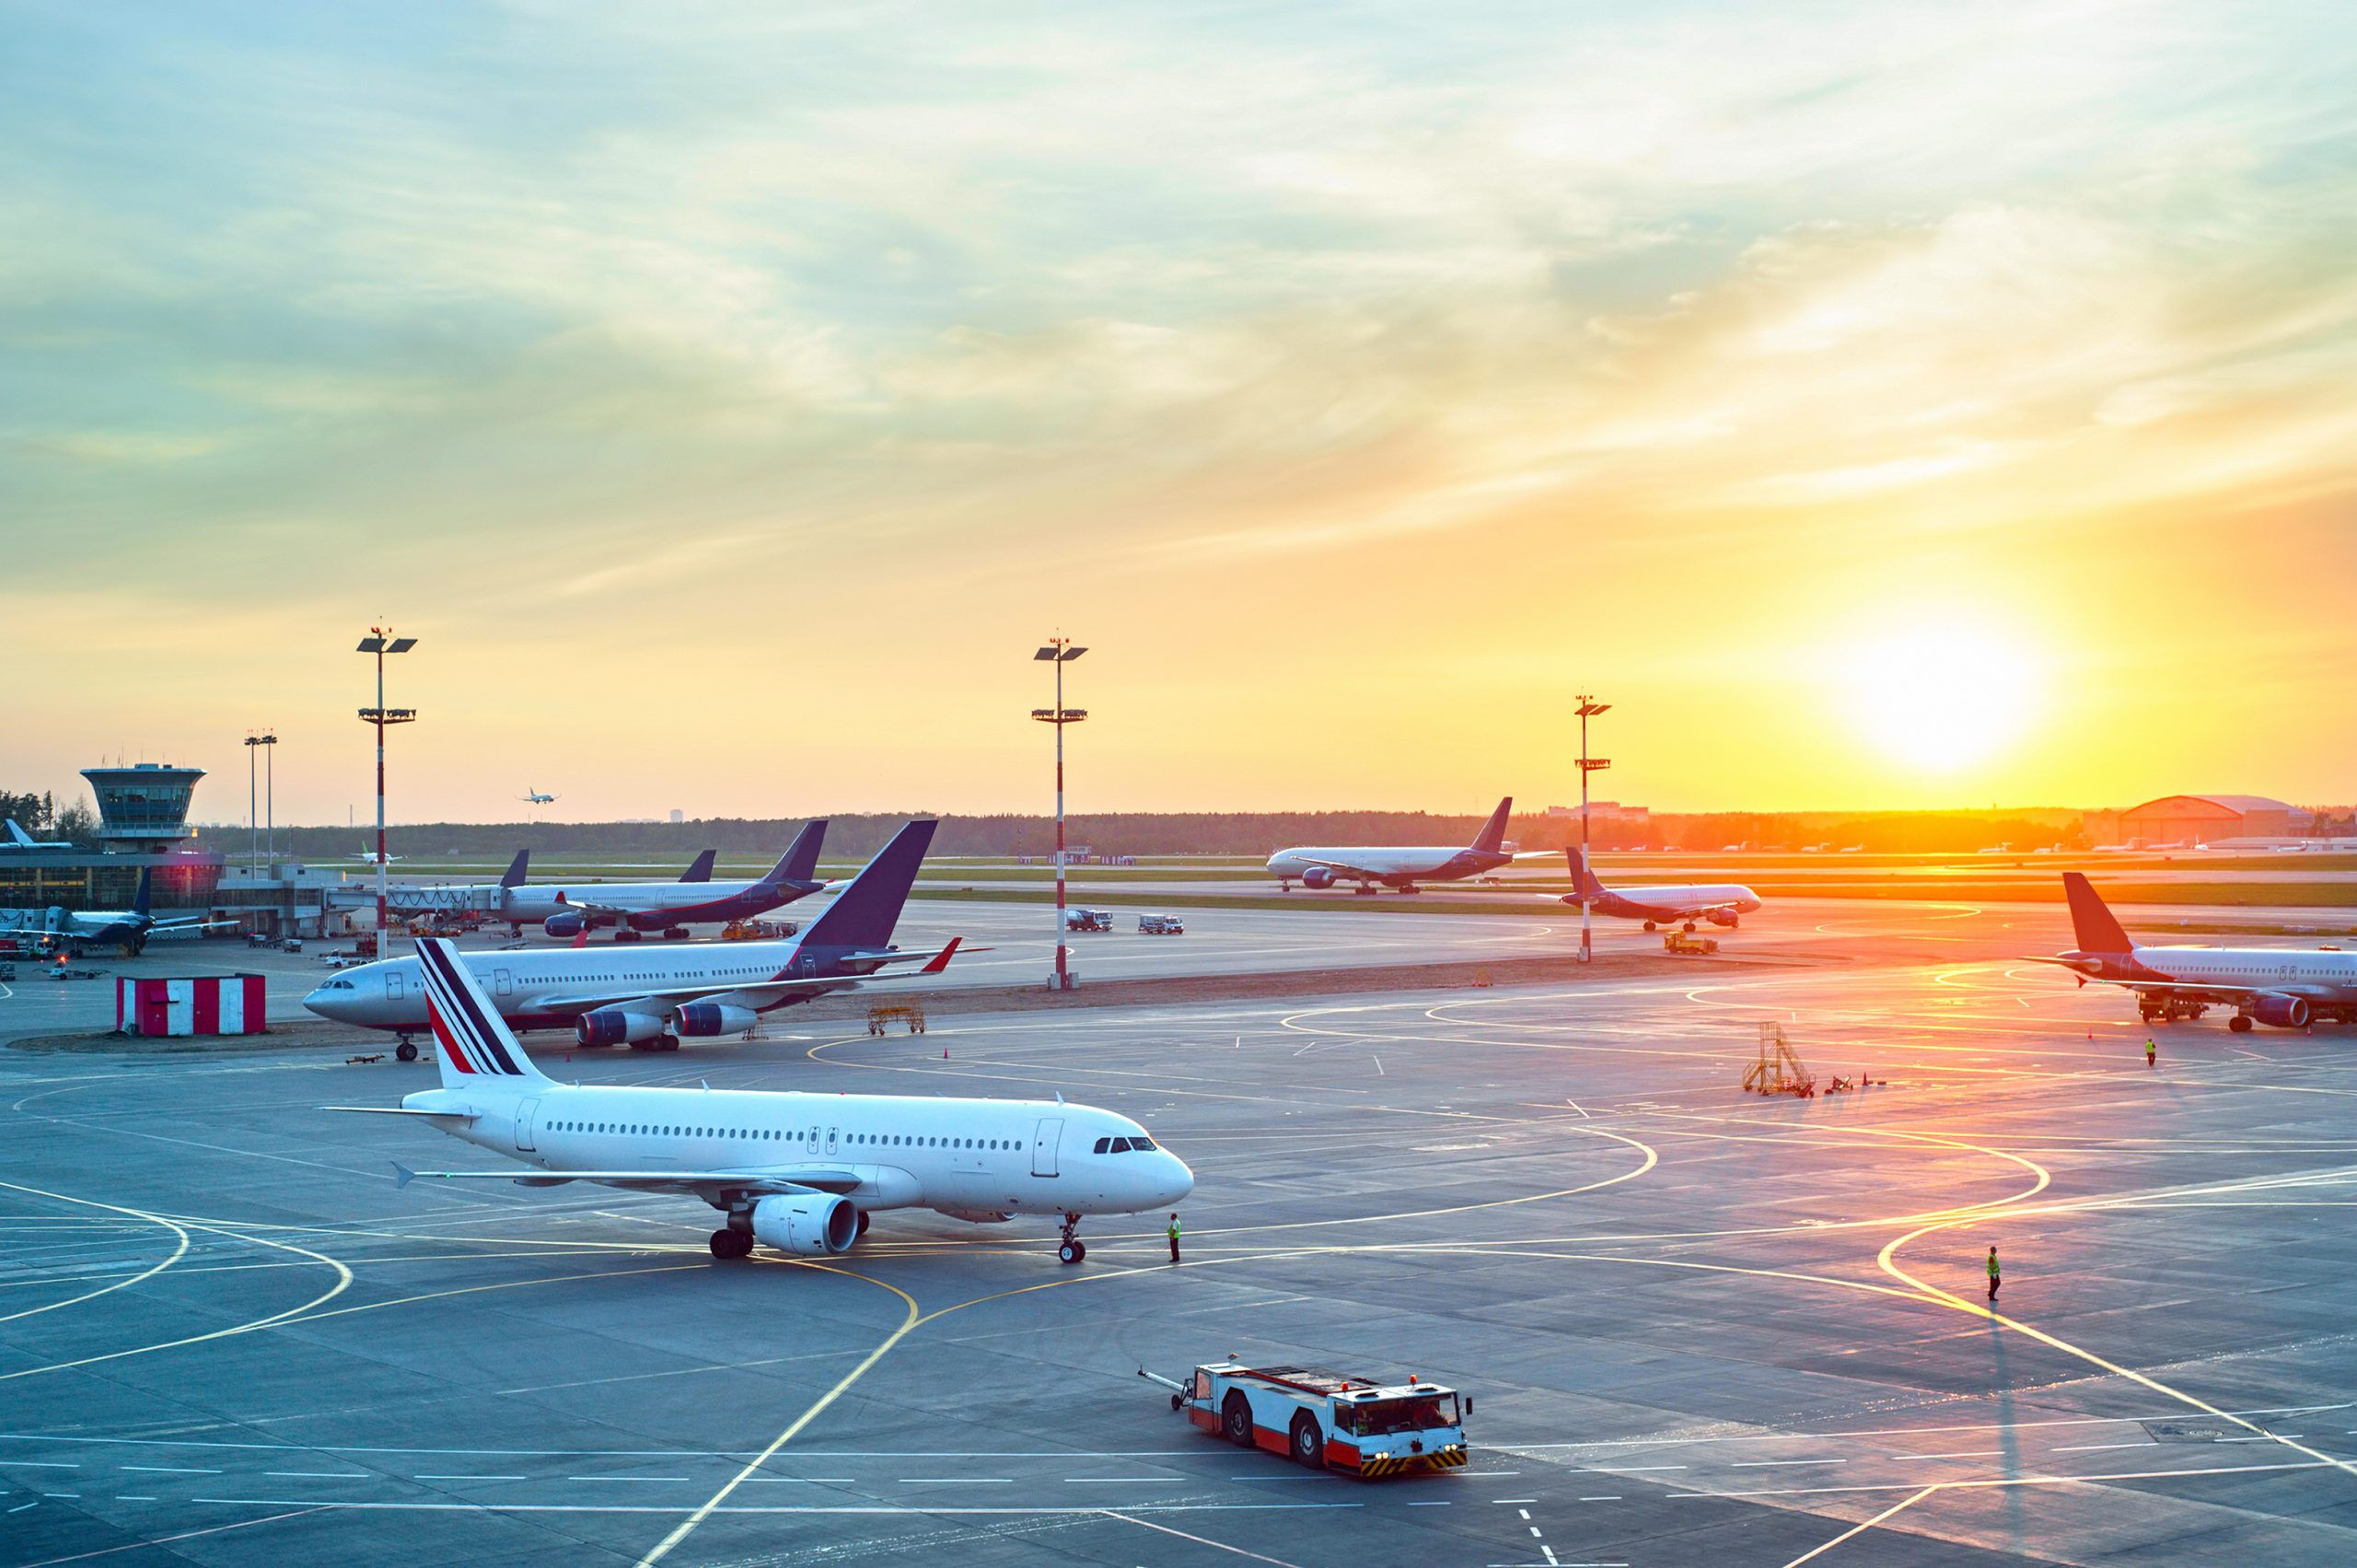 Ben Gurion Airport Transfers, Transport, And Taxis